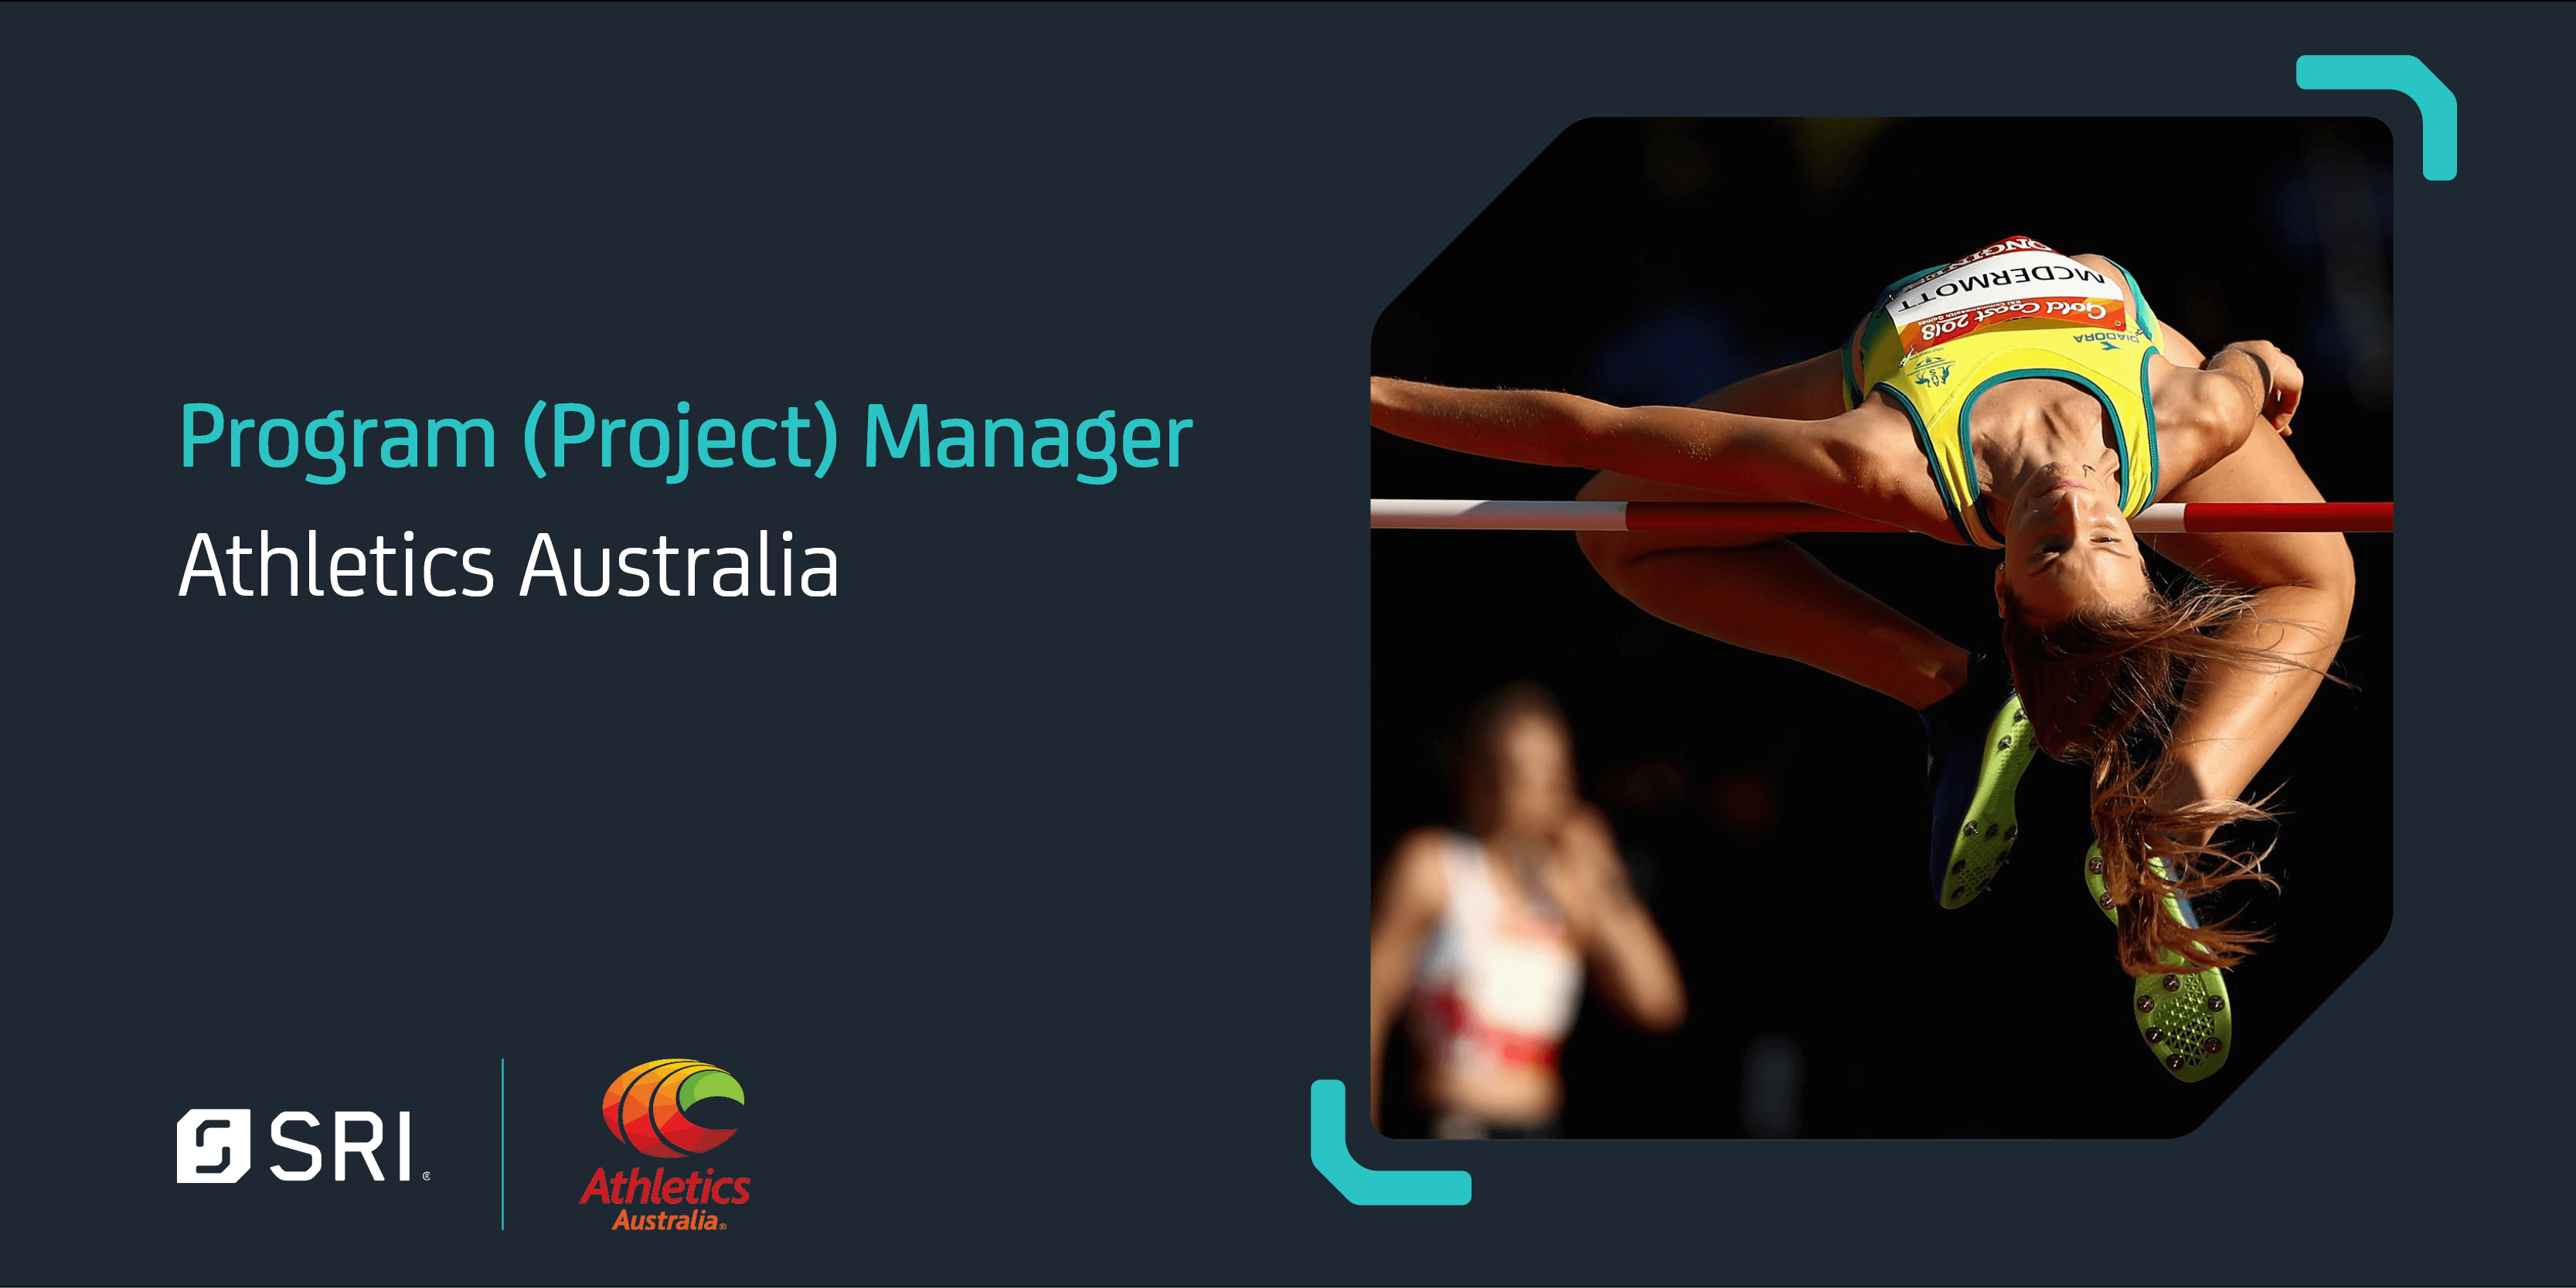 Athletics Australia seek a Program (Project) Manager